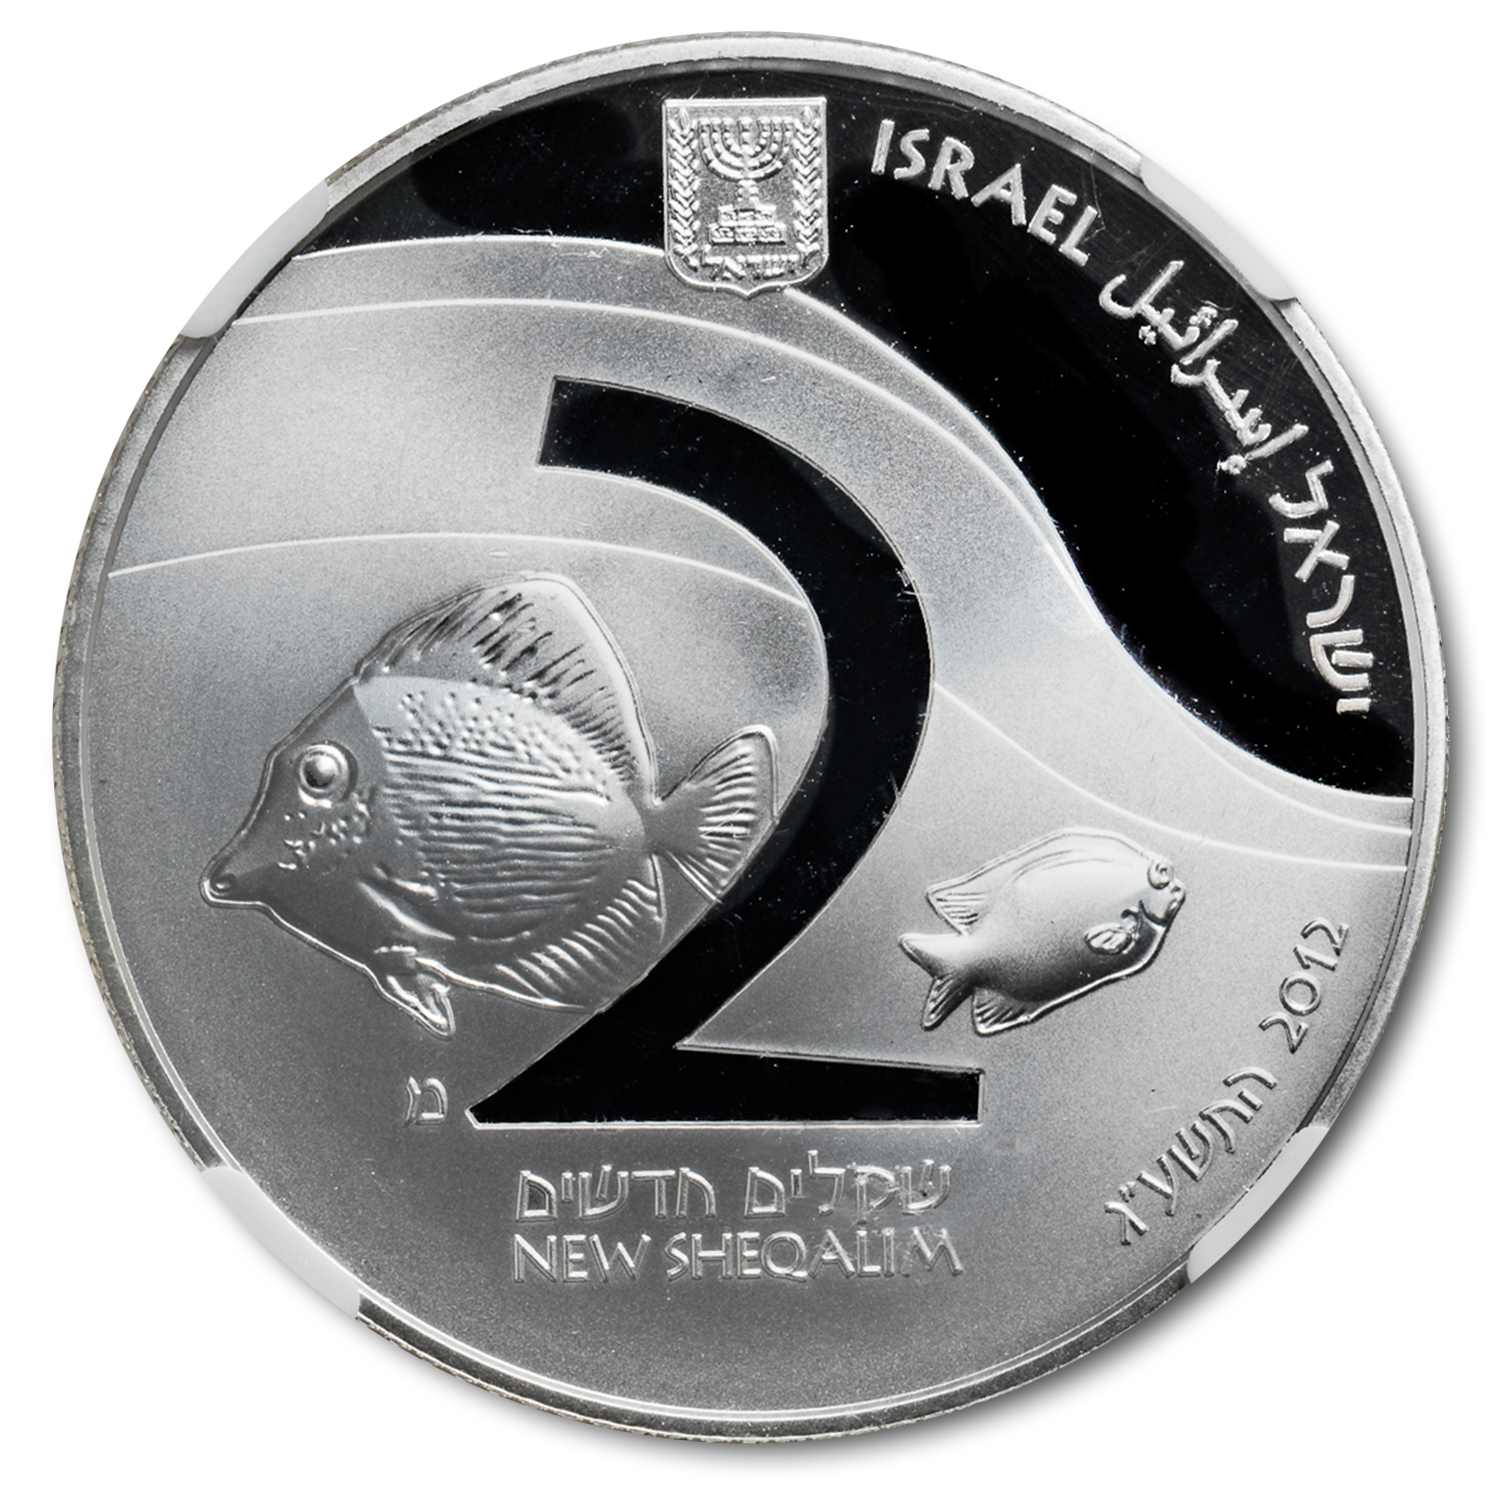 2012 Israel Coral Reef, Eilat Silver 2 NIS Coin PF-69 UCAM NGC